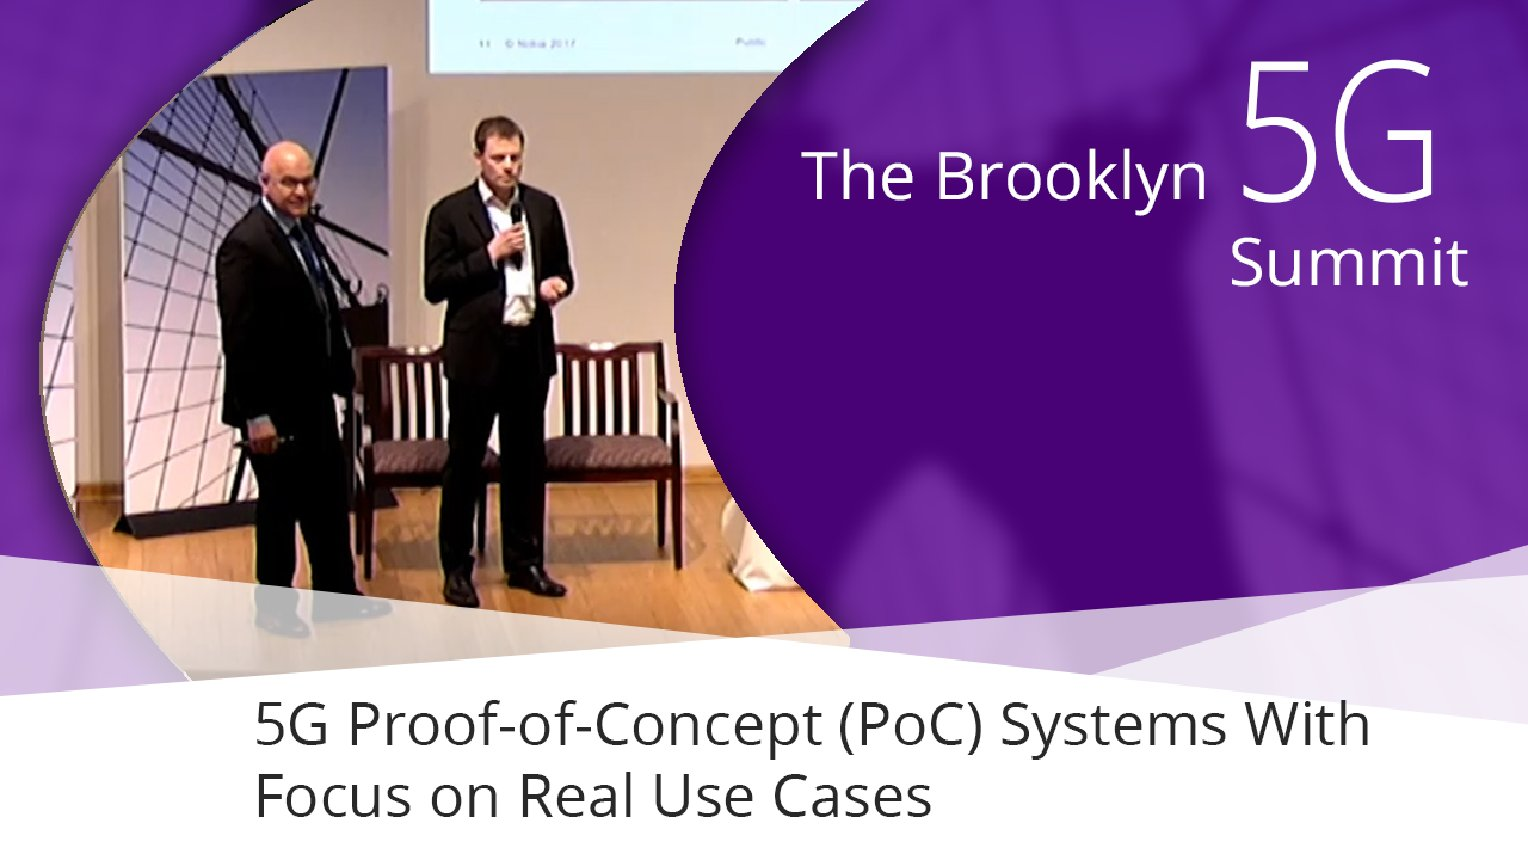 5G Proof-of-Concept (PoC) Systems with focus on real use cases - Juha Silipa and Mark Cudak: Brooklyn 5G Summit 2017